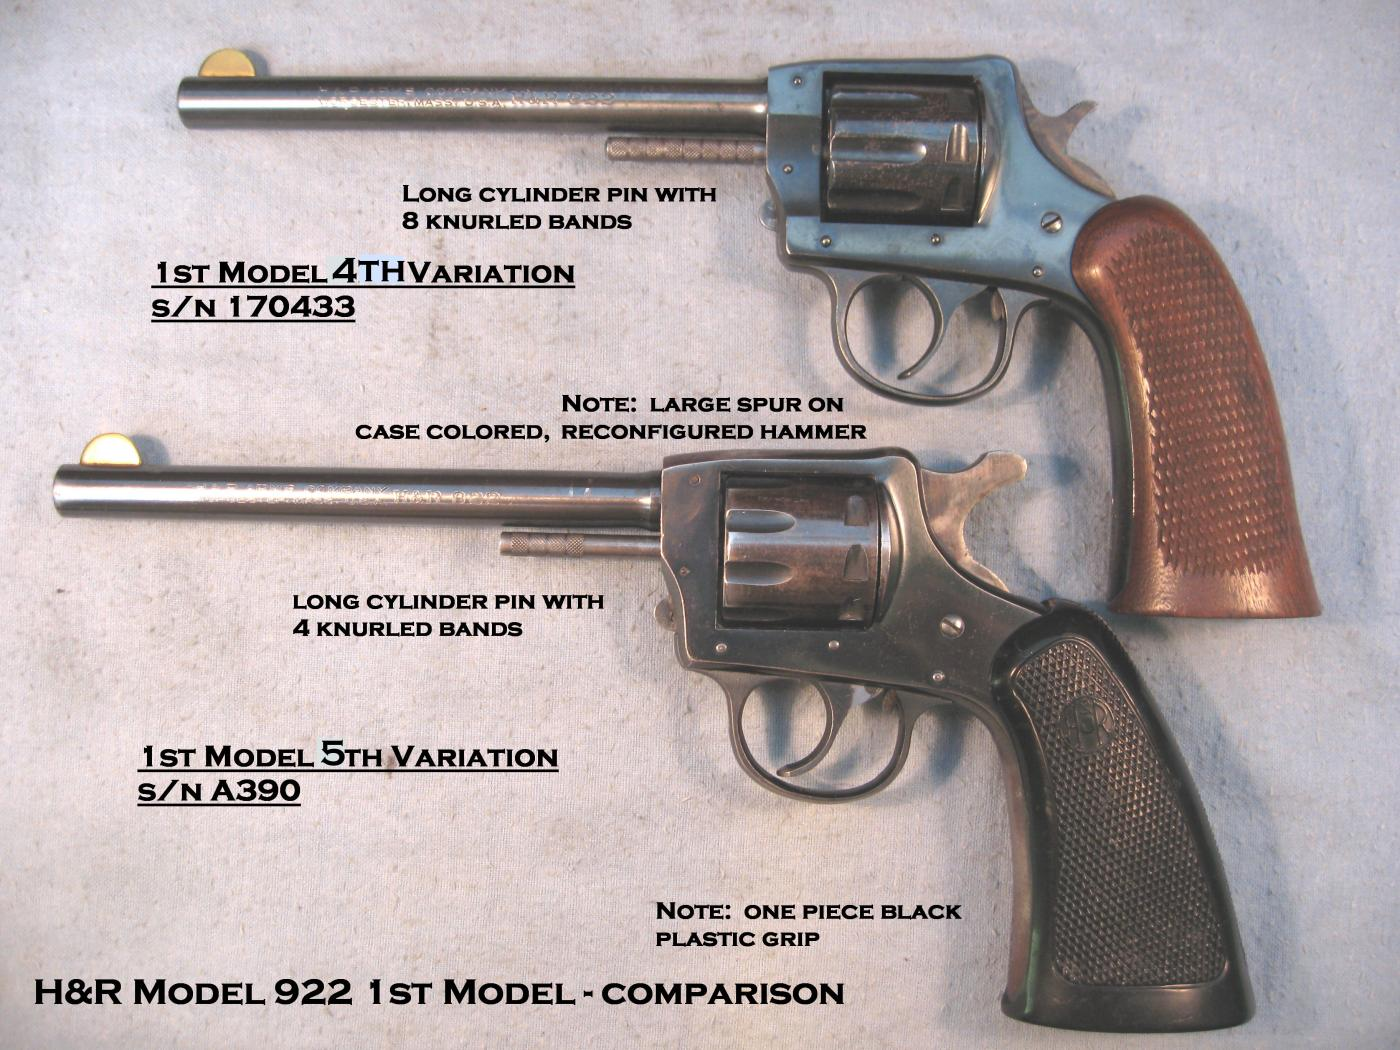 My fathers 1944 H&R 922 s/n E7679 | The Firearms Forum - The Buying